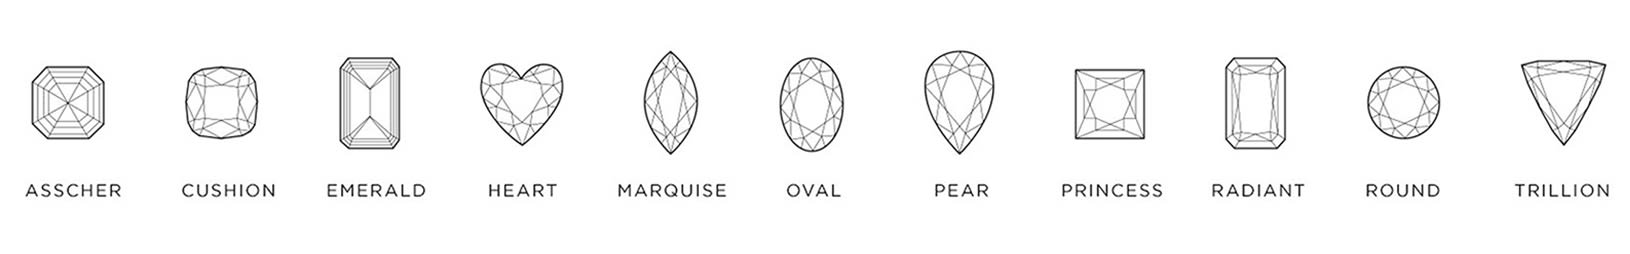 The different diamond shapes